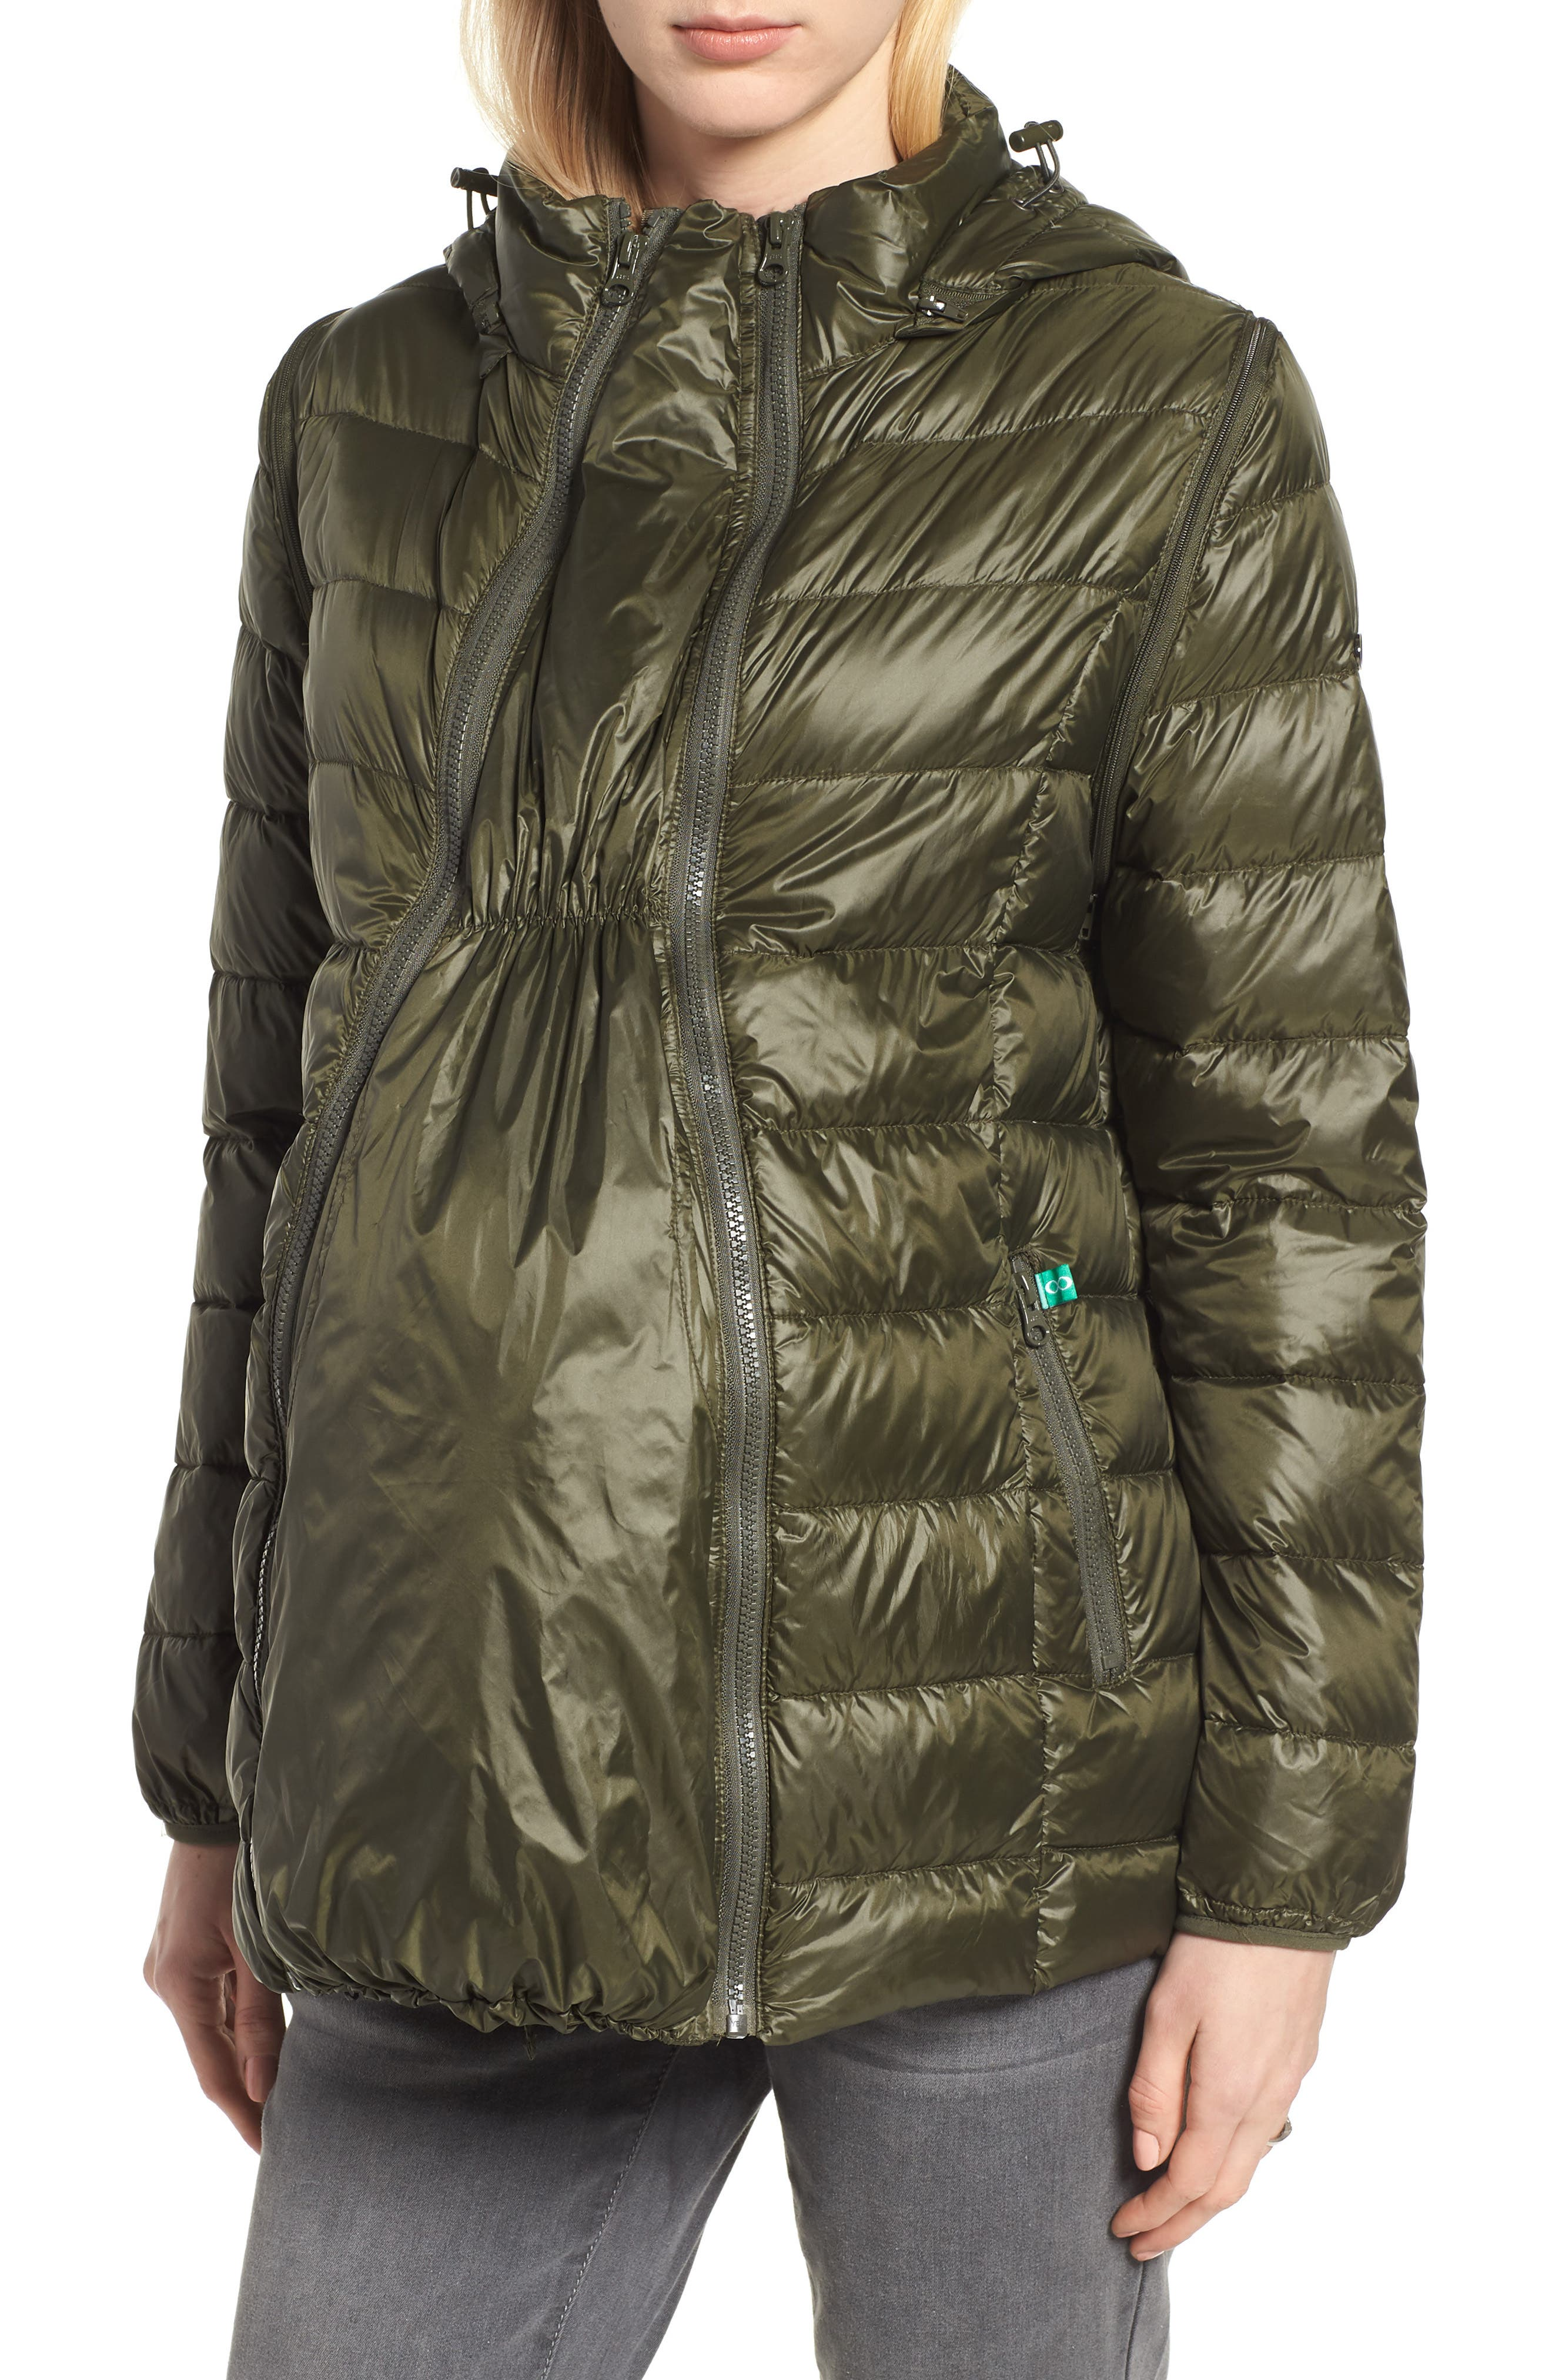 MODERN ETERNITY, Lightweight Puffer Convertible 3-in-1 Maternity Jacket, Main thumbnail 1, color, KHAKI GREEN